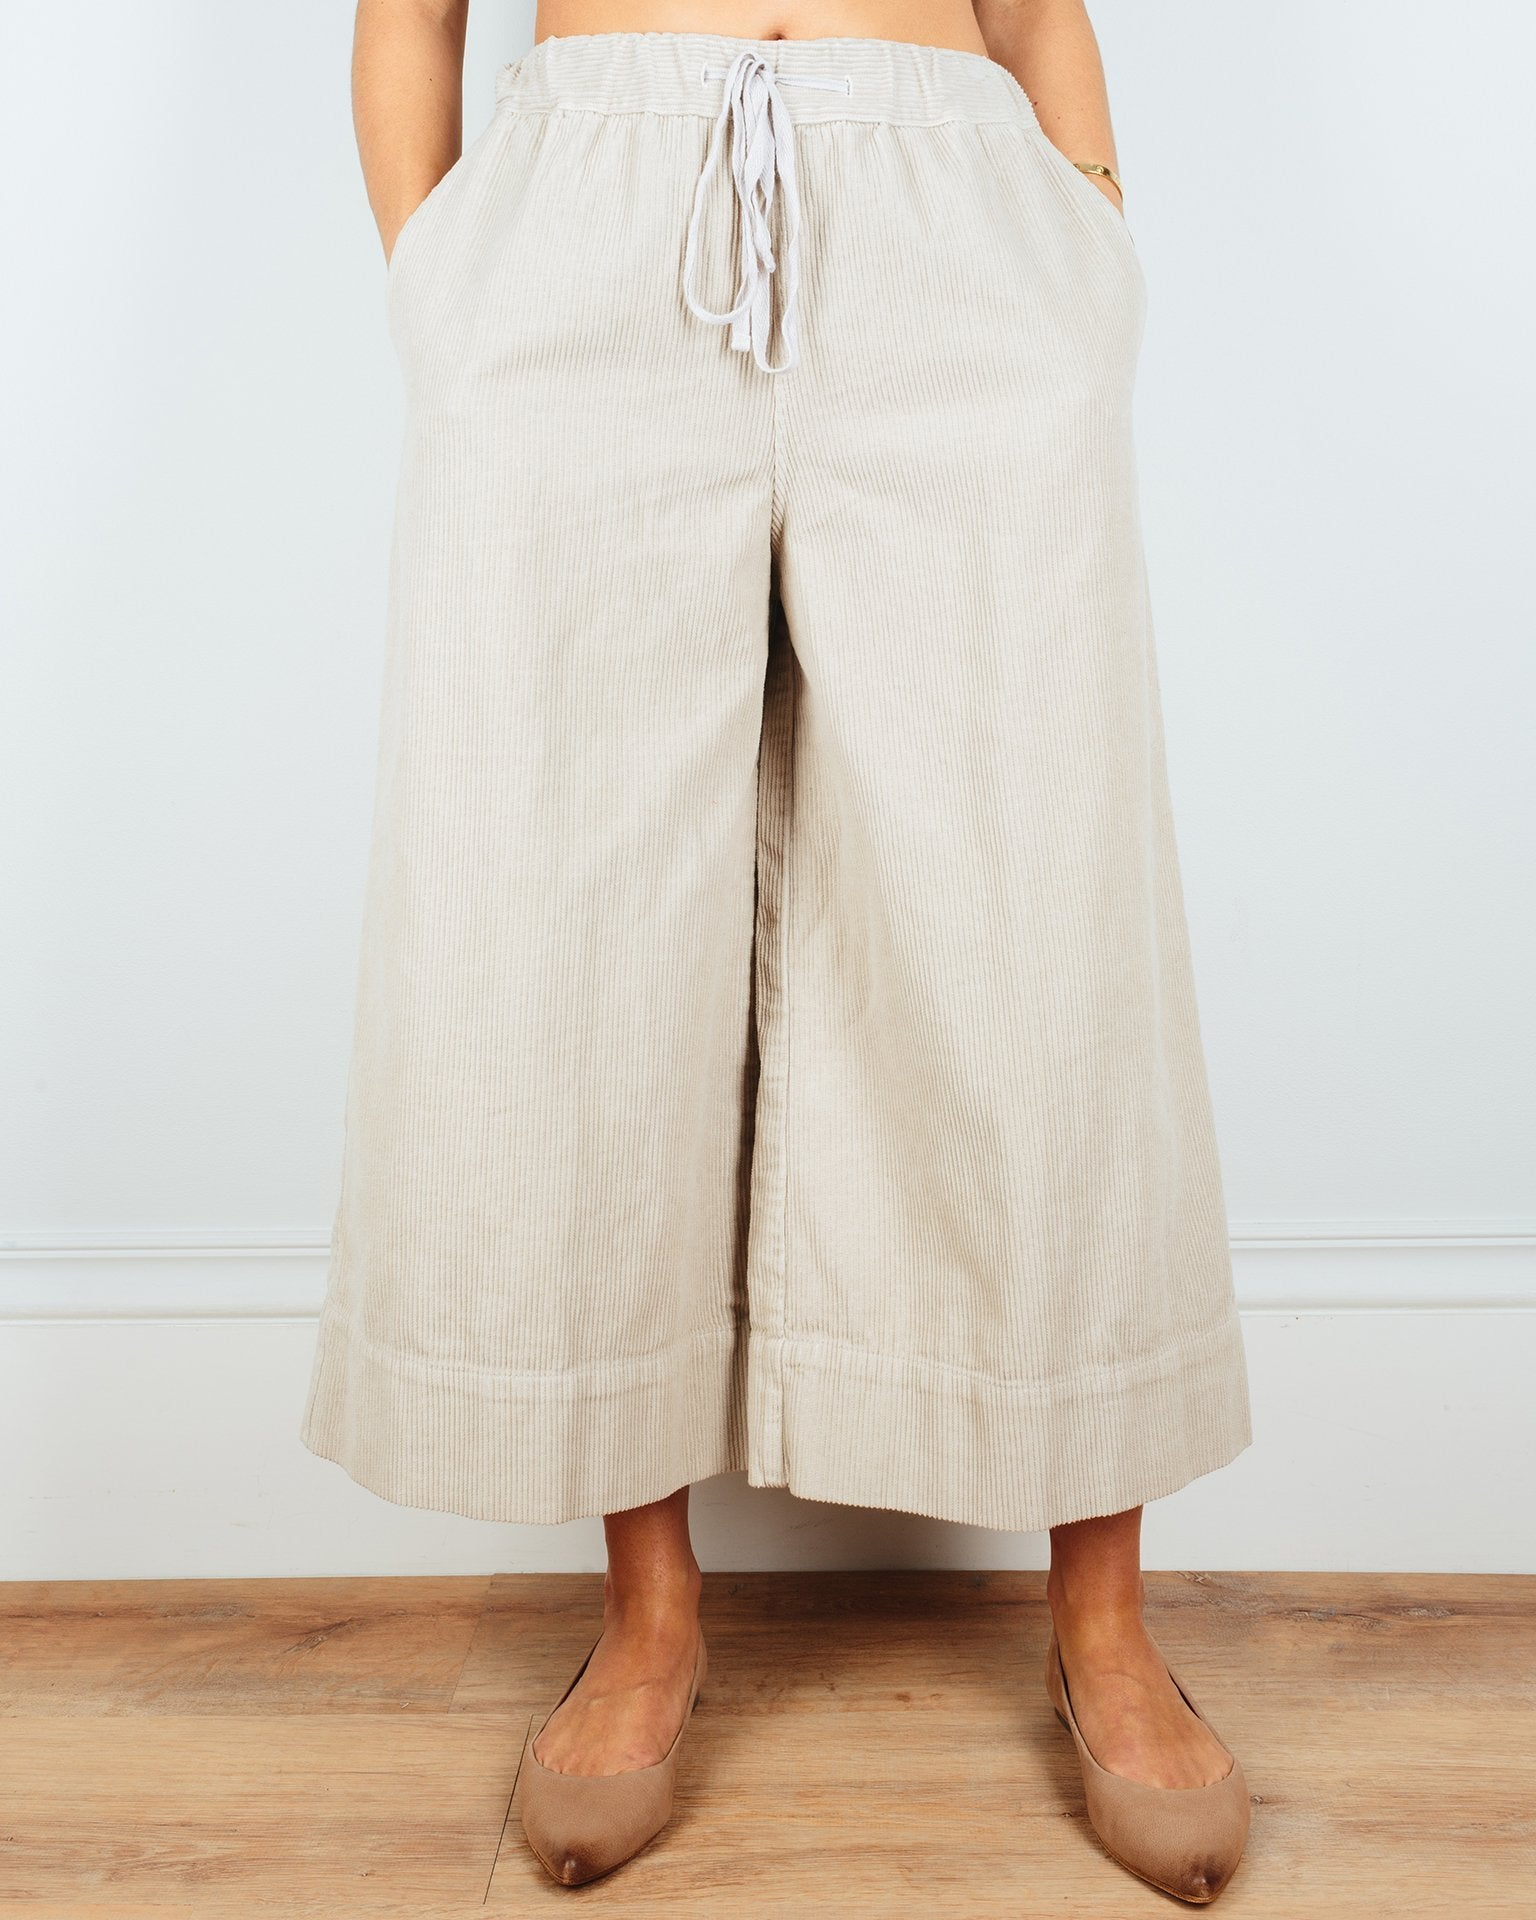 CP Shades Clothing Oat / XS Kiki Crop Pant in Oat Wide Wale Cord